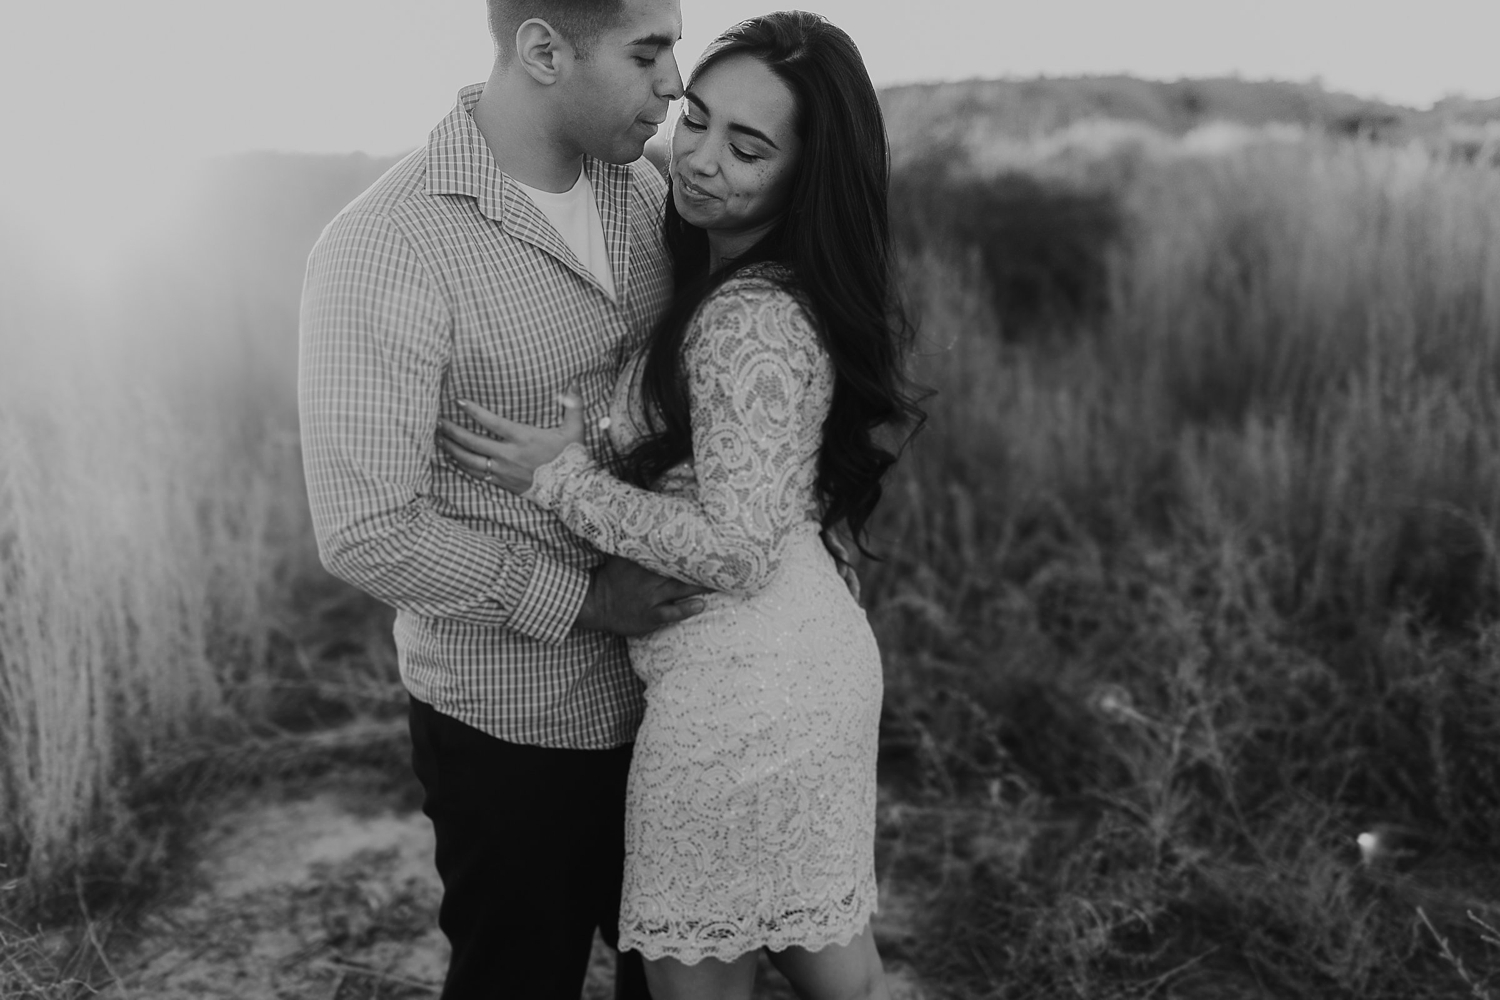 Alicia+lucia+photography+-+albuquerque+wedding+photographer+-+santa+fe+wedding+photography+-+new+mexico+wedding+photographer+-+albuquerque+winter+engagement+session_0011.jpg